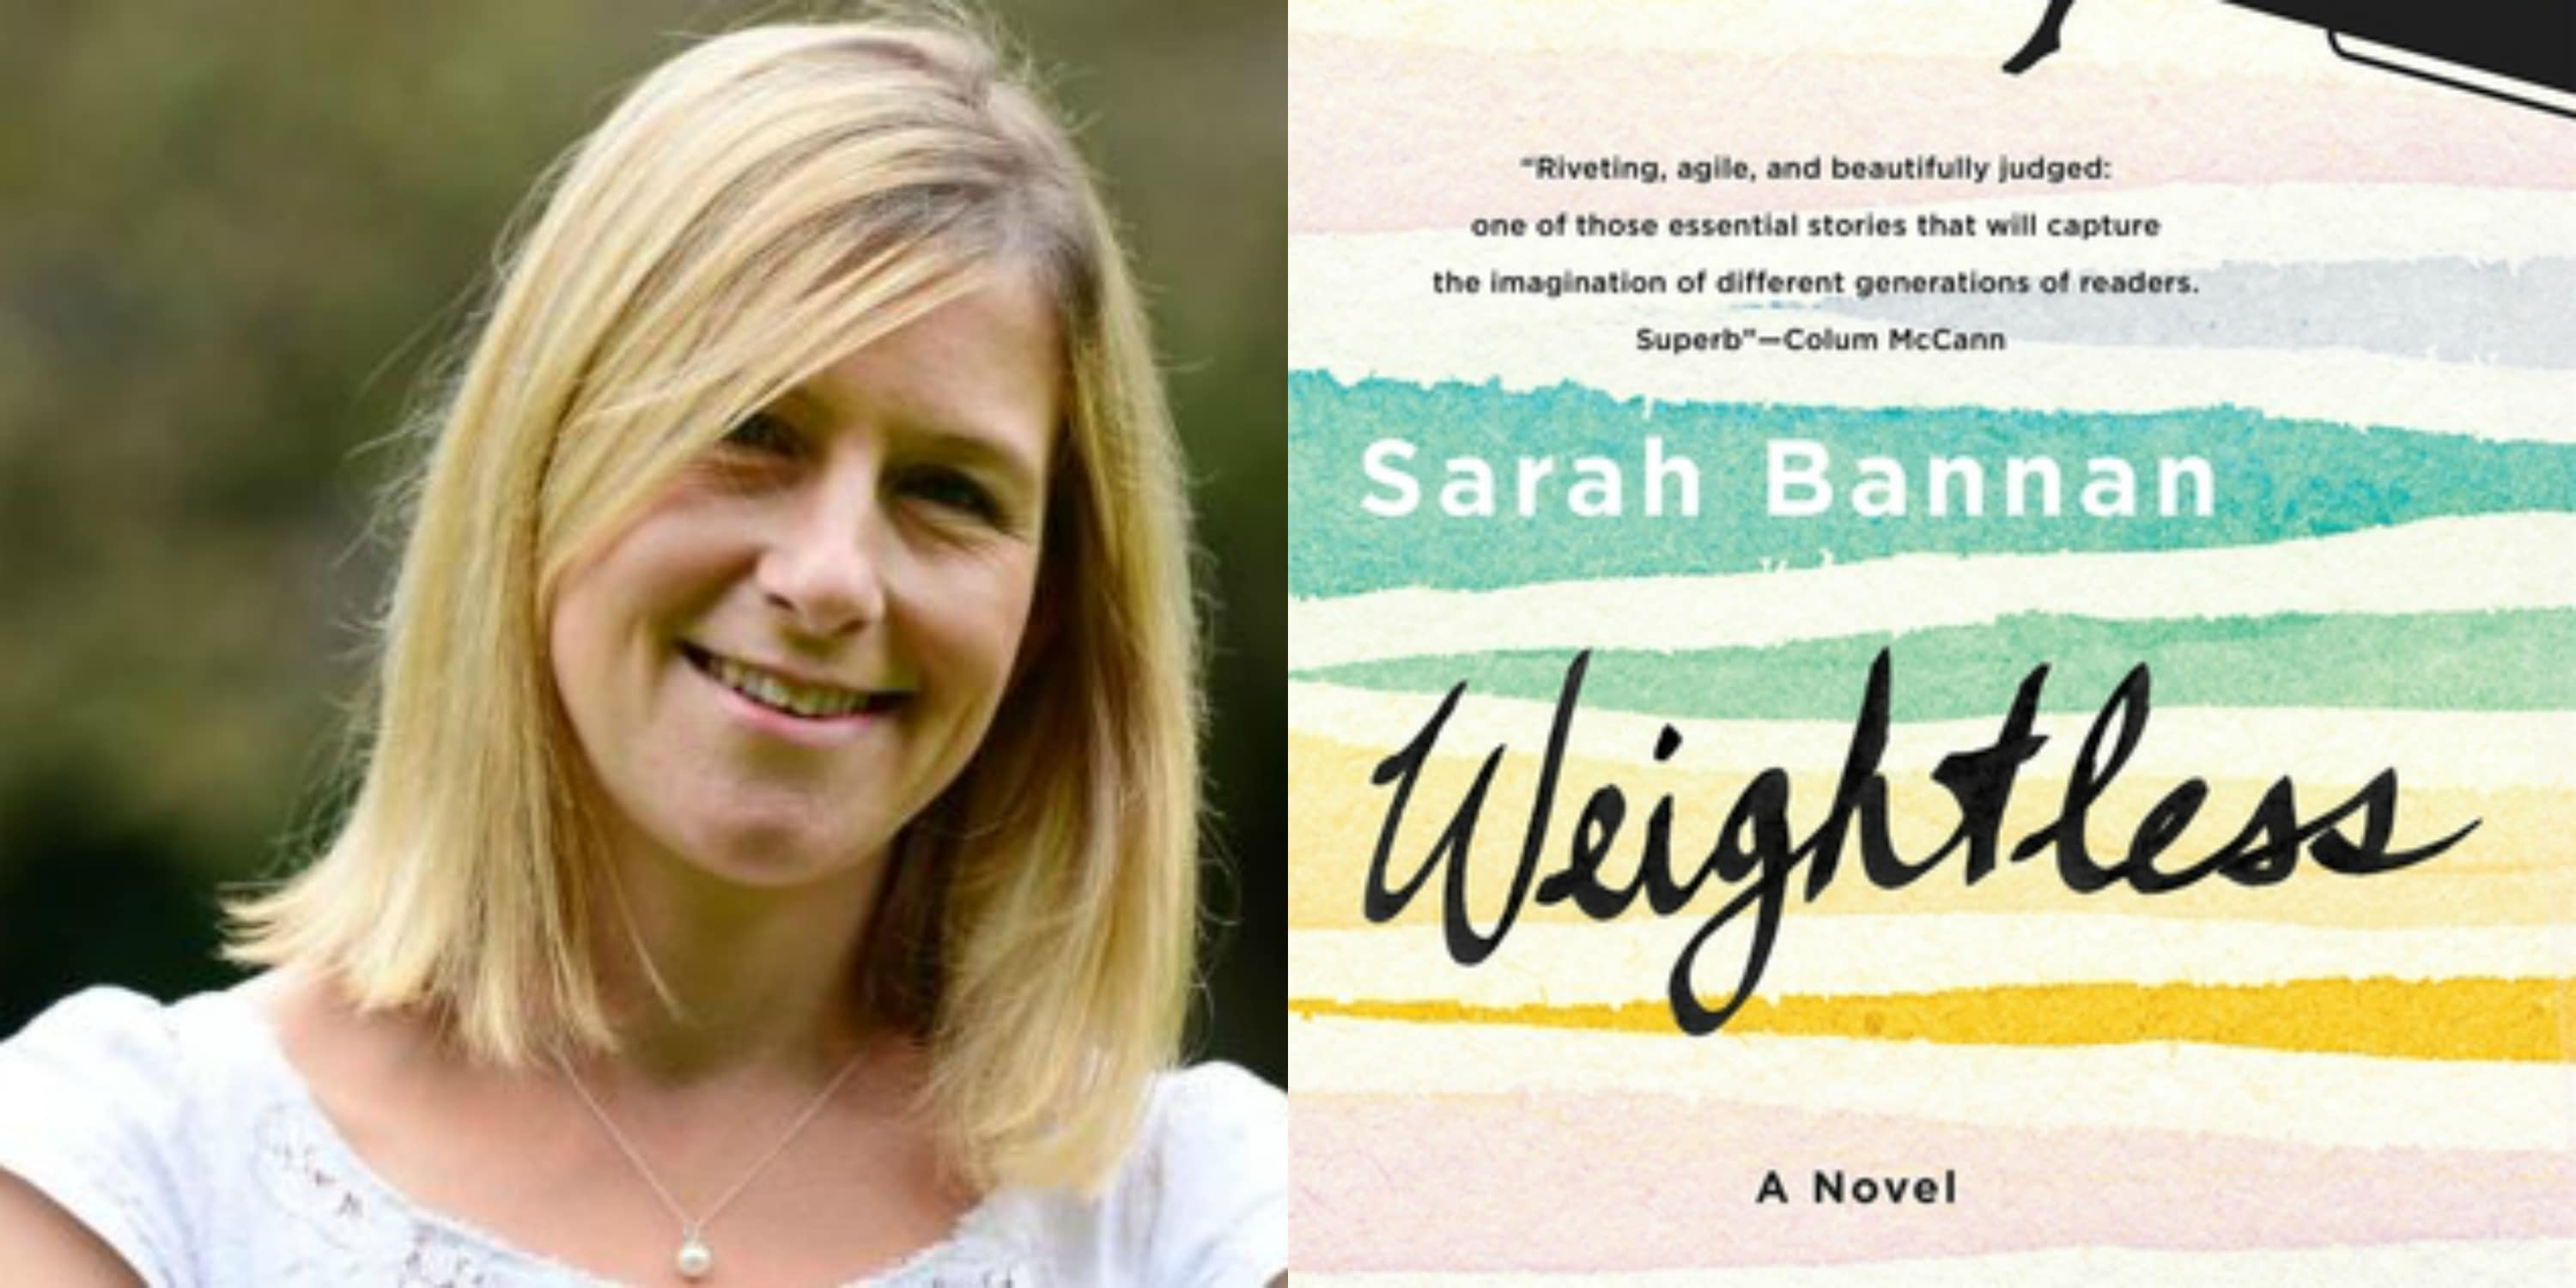 Sundays With Writers: Weightless by Sarah Bannan